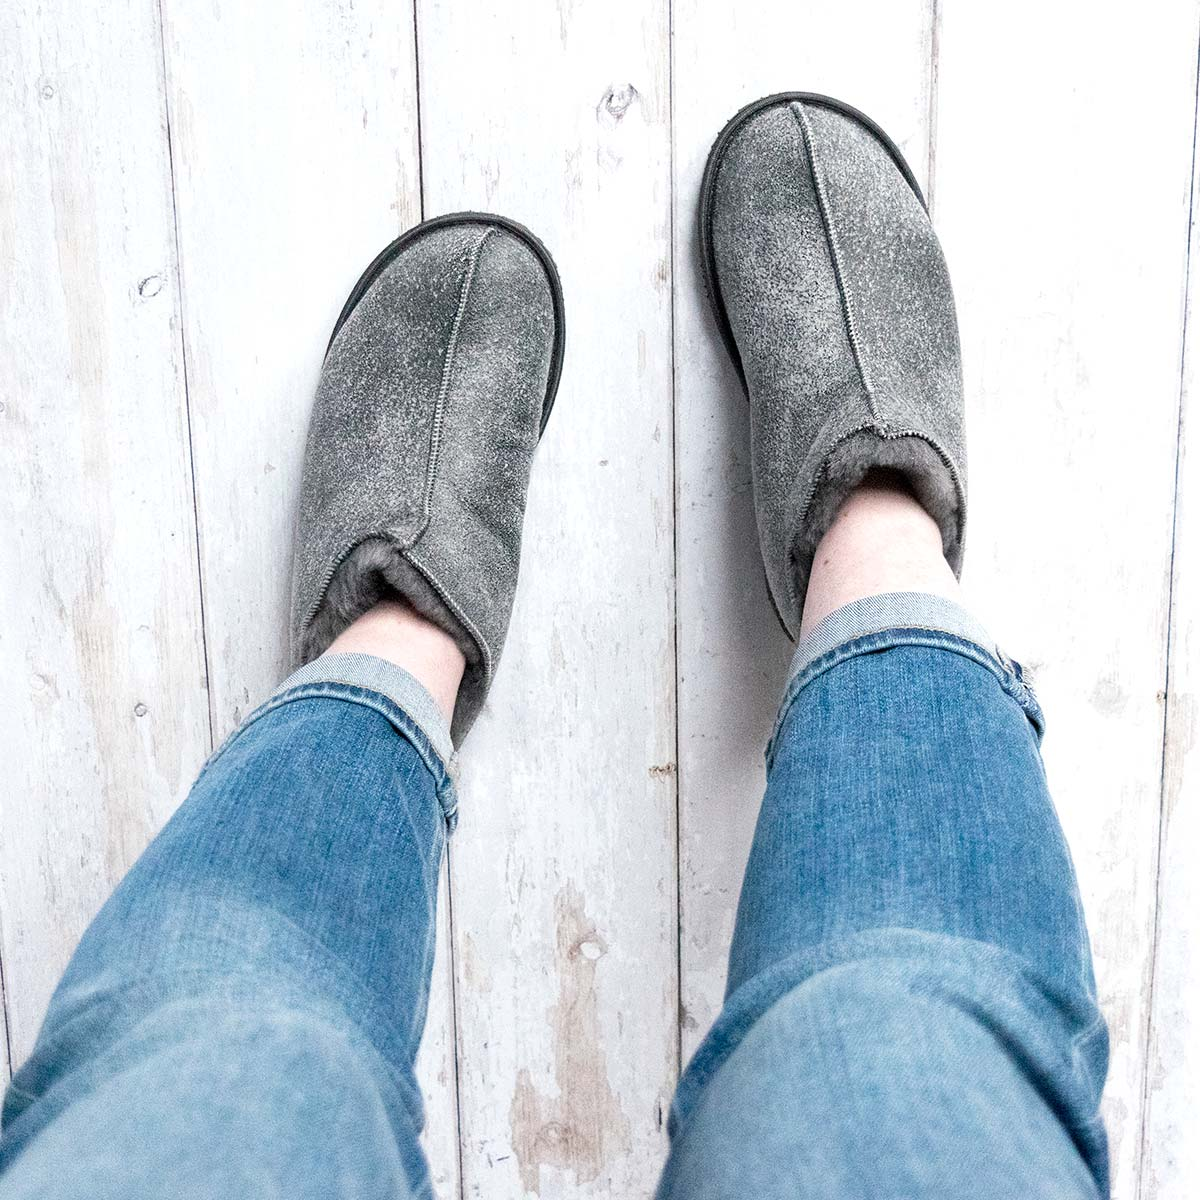 NEW Alpin Sheepskin Slippers - Grey Distressed Leather